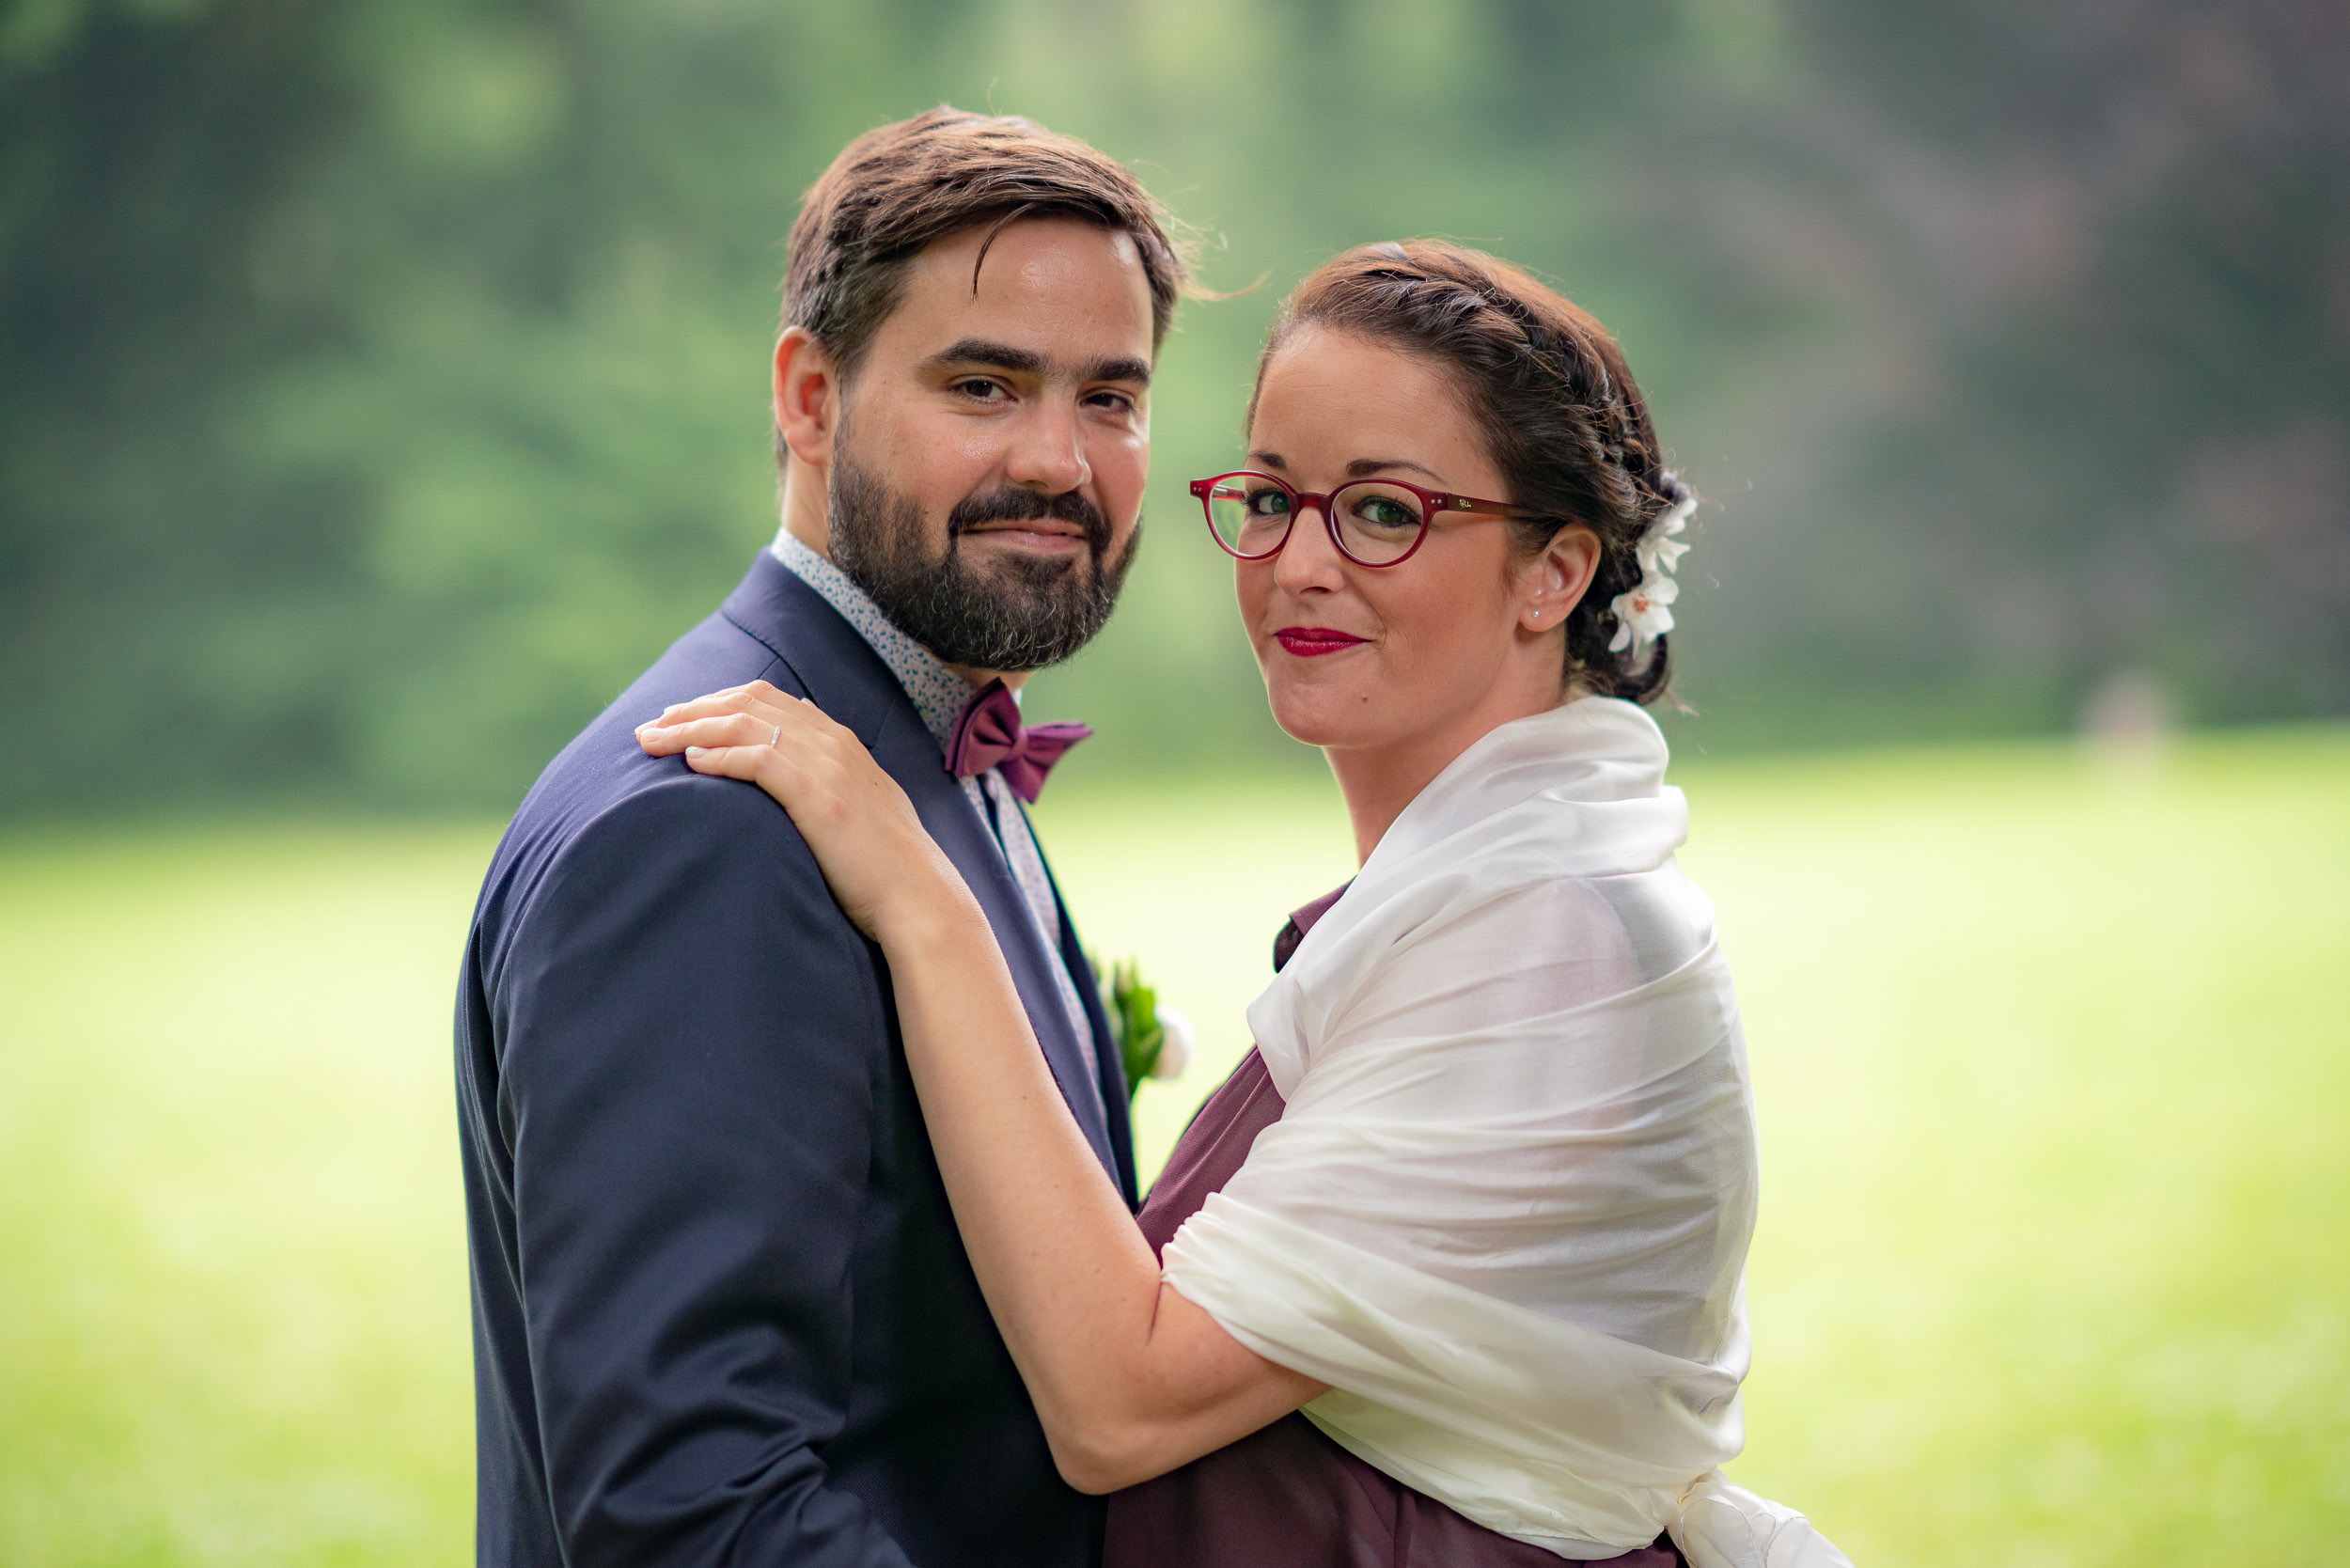 Civil wedding made by a Brussels photographer